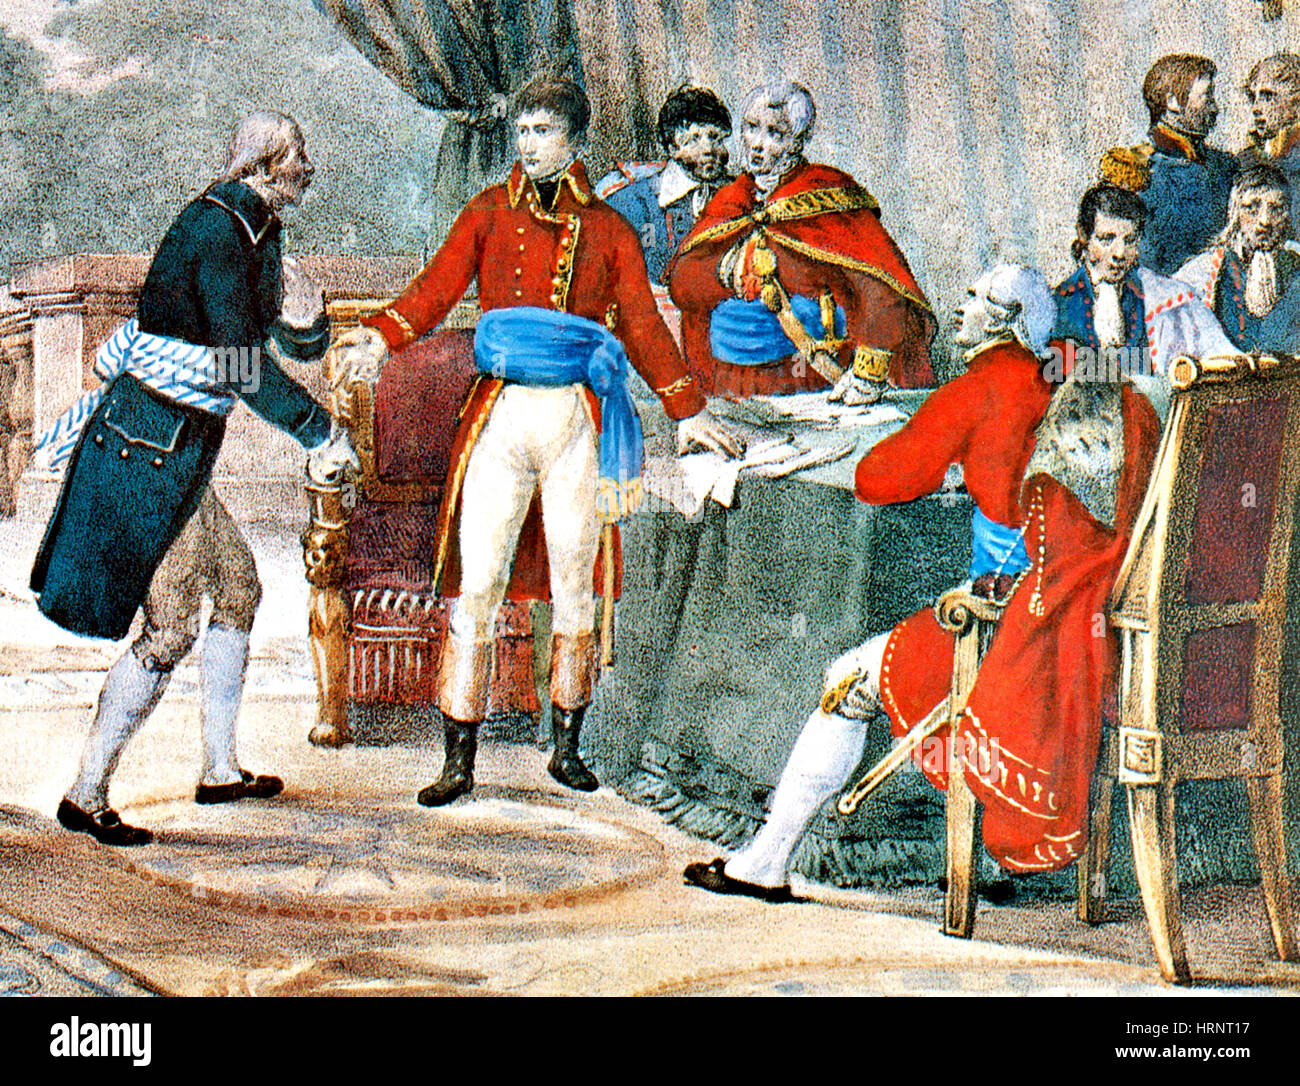 Louisiana Purchase, 1803 - Stock Image